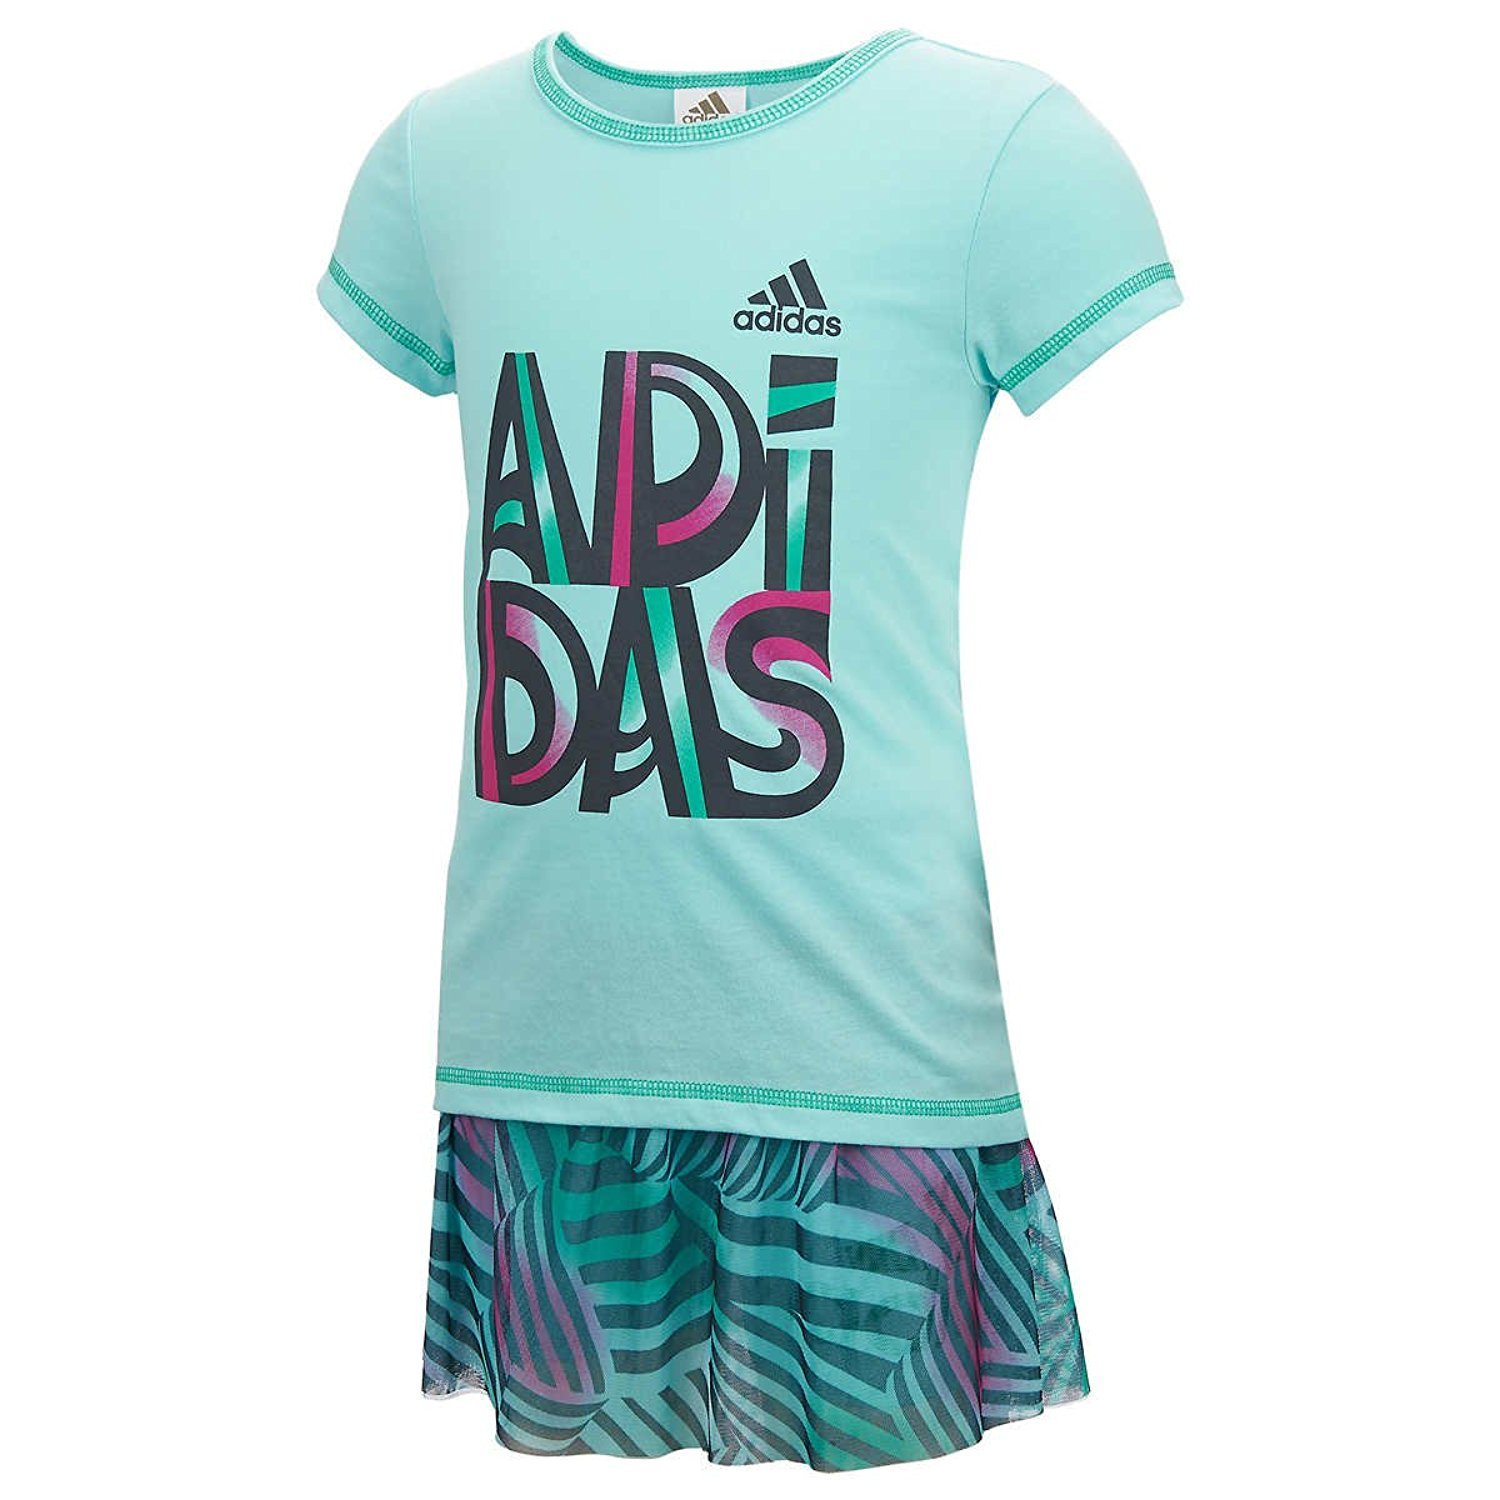 Adidas 2 Piece Top & Skort Set for Girls